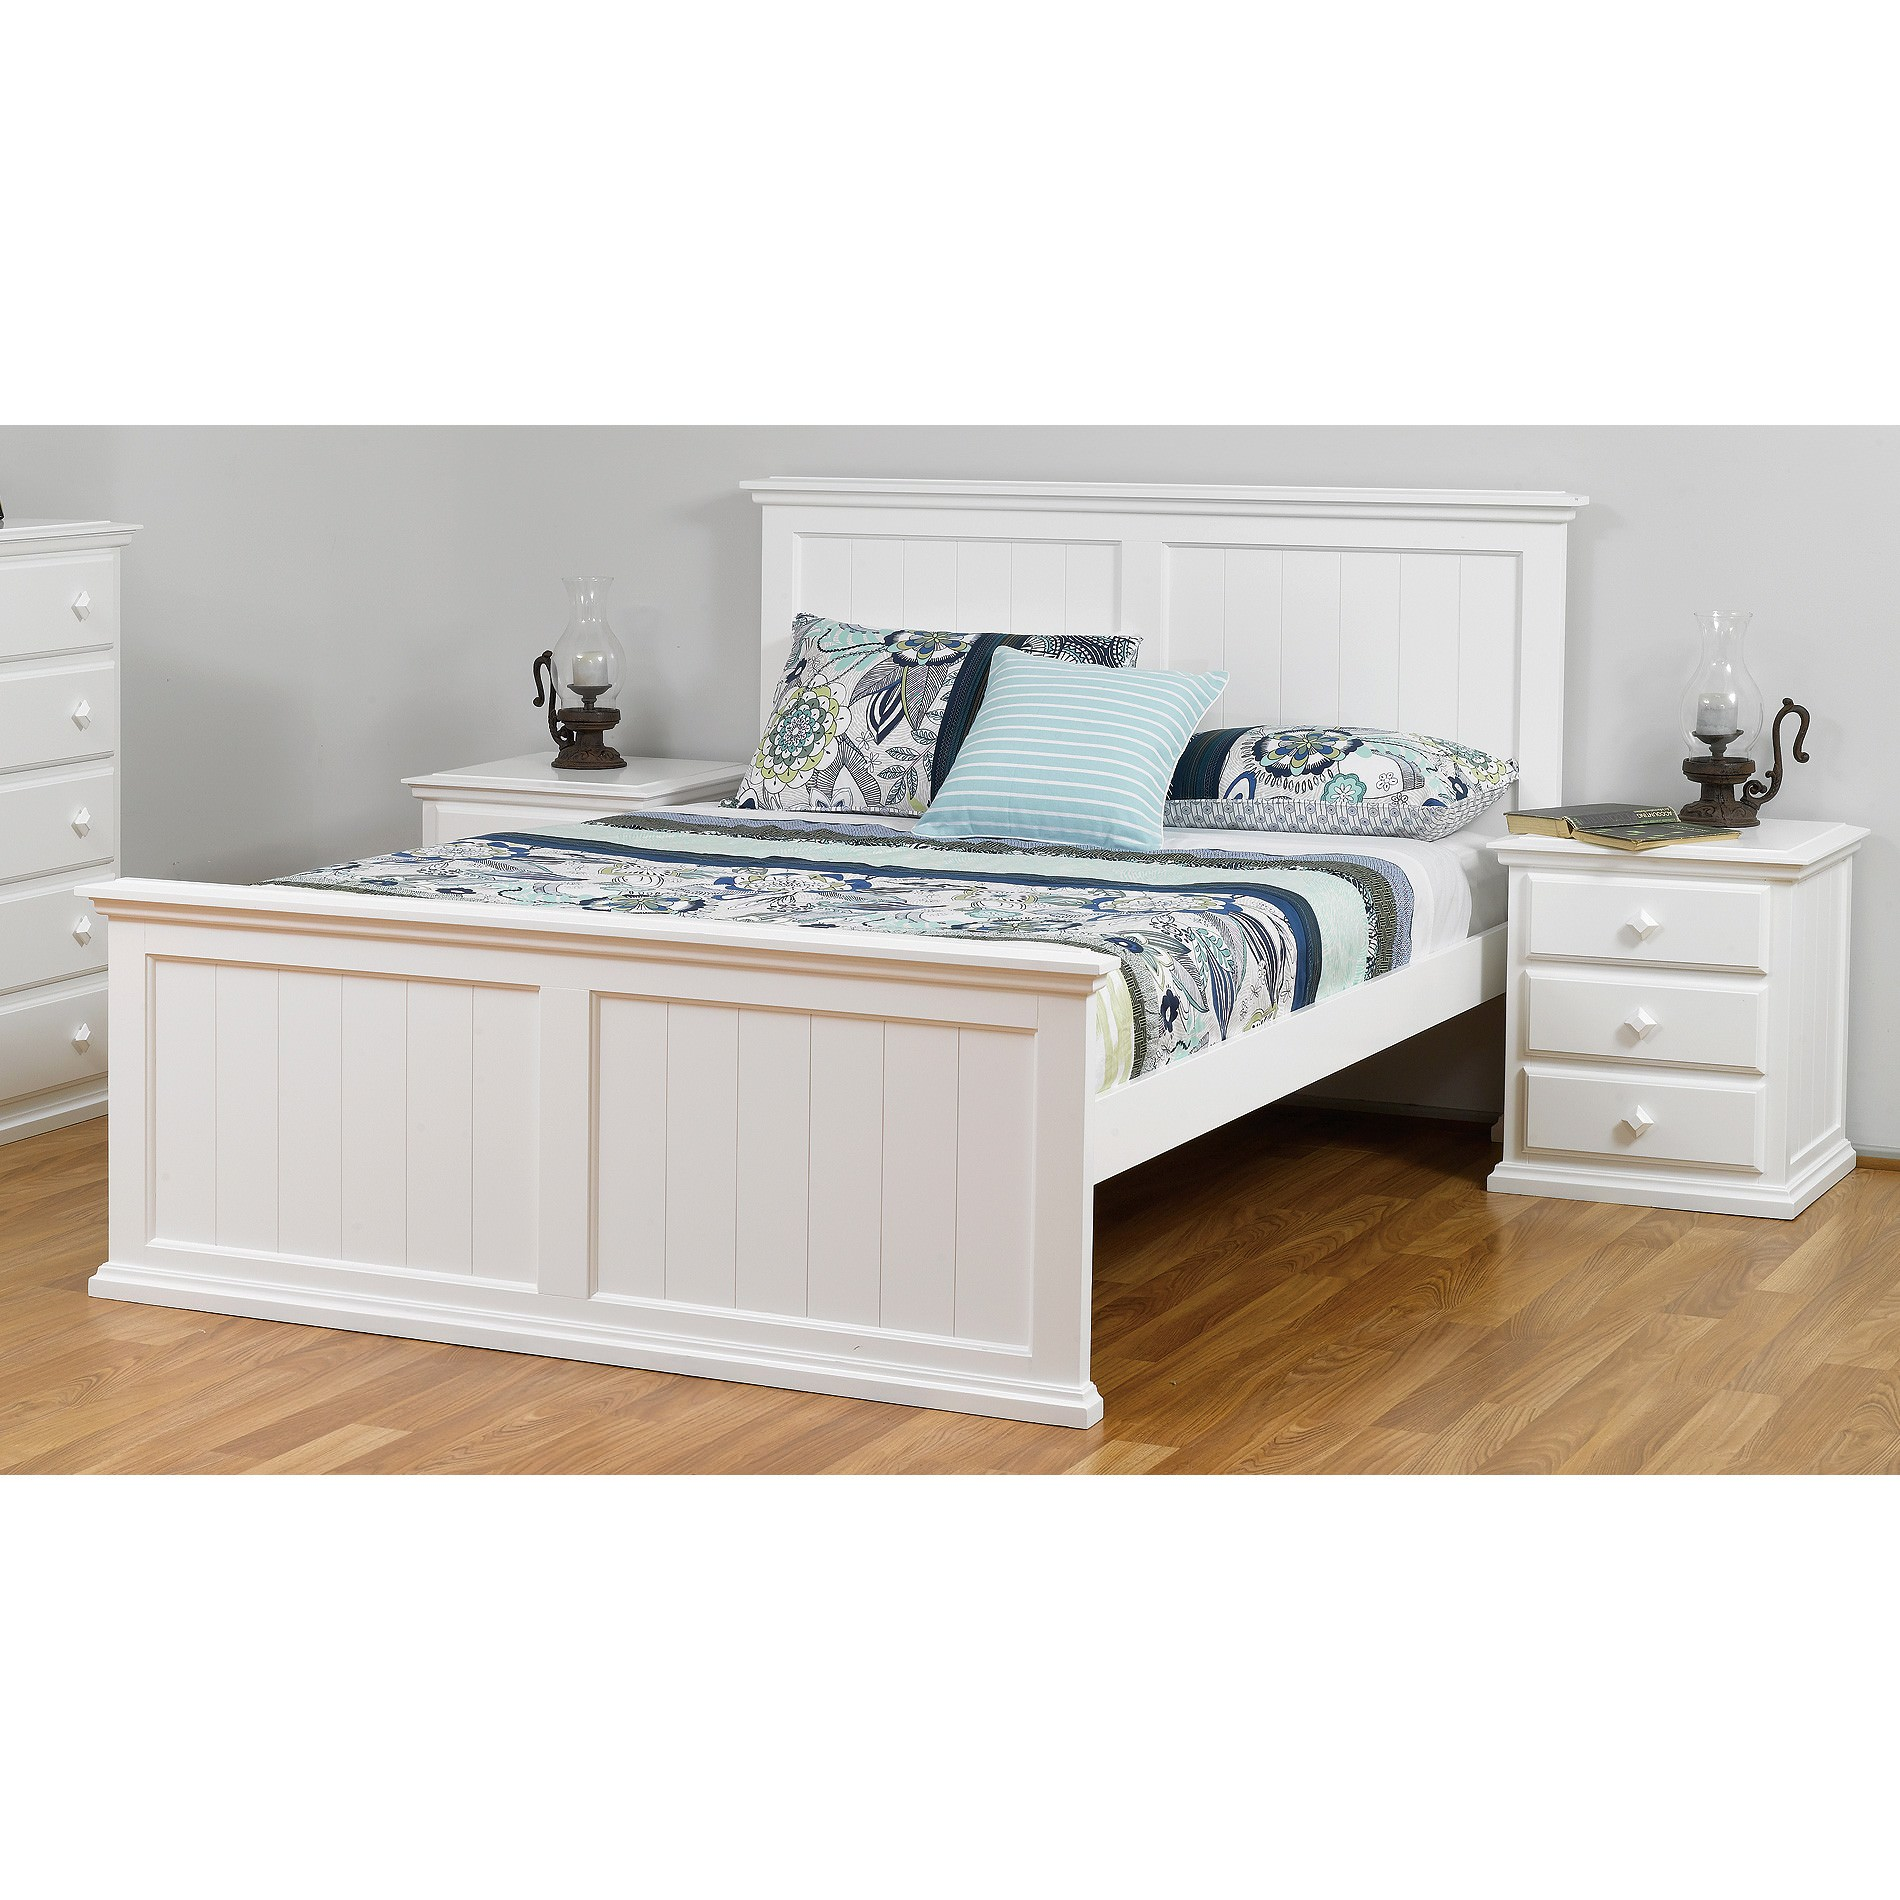 Fairmont Wooden Bed, King